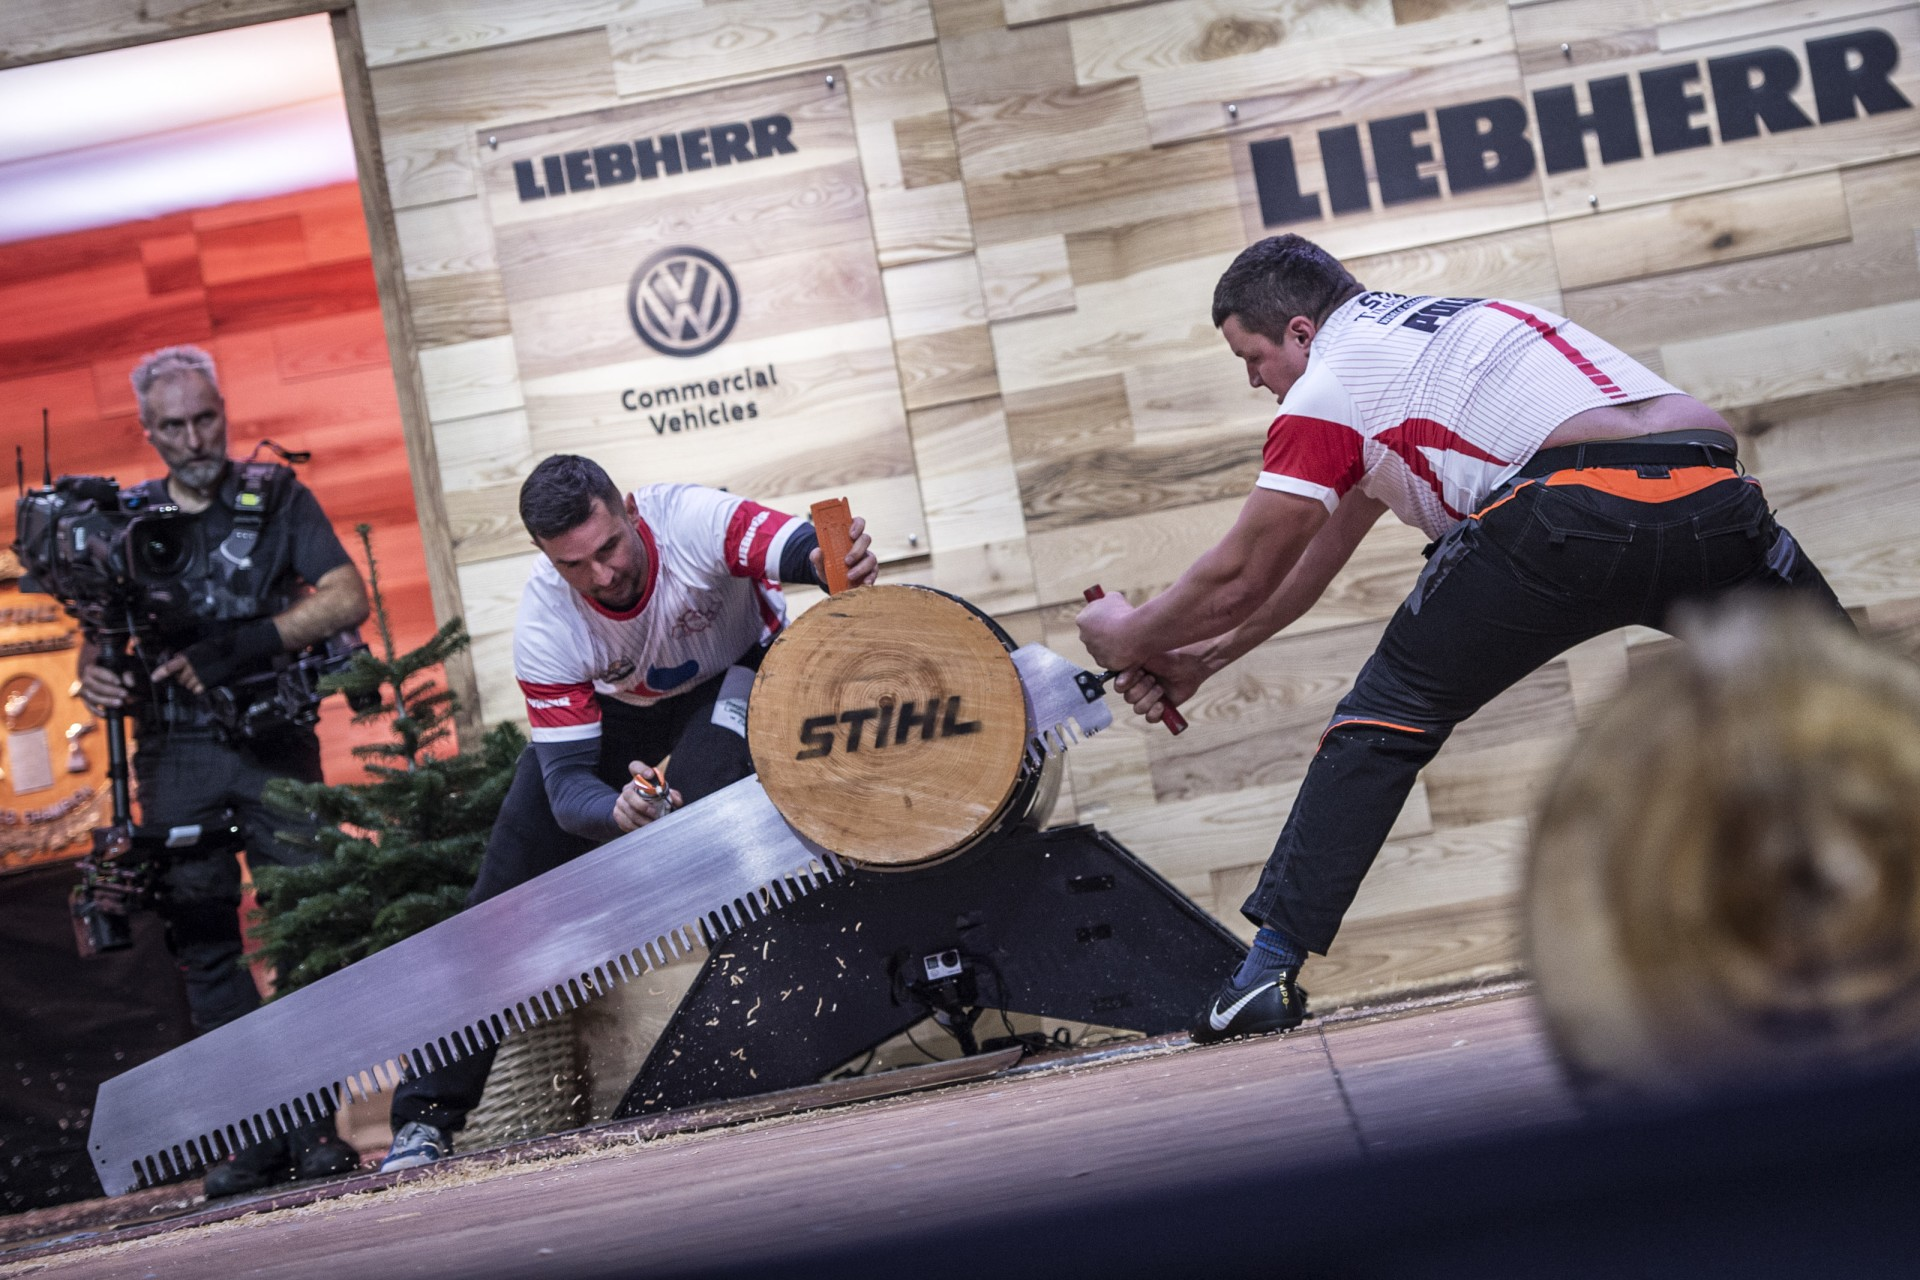 Team Poland competes during the Time Trials for the Team Competition of the Stihl Timbersports World Championships at the Hakons Hall in Lillehammer, Norway on November 3, 2017.